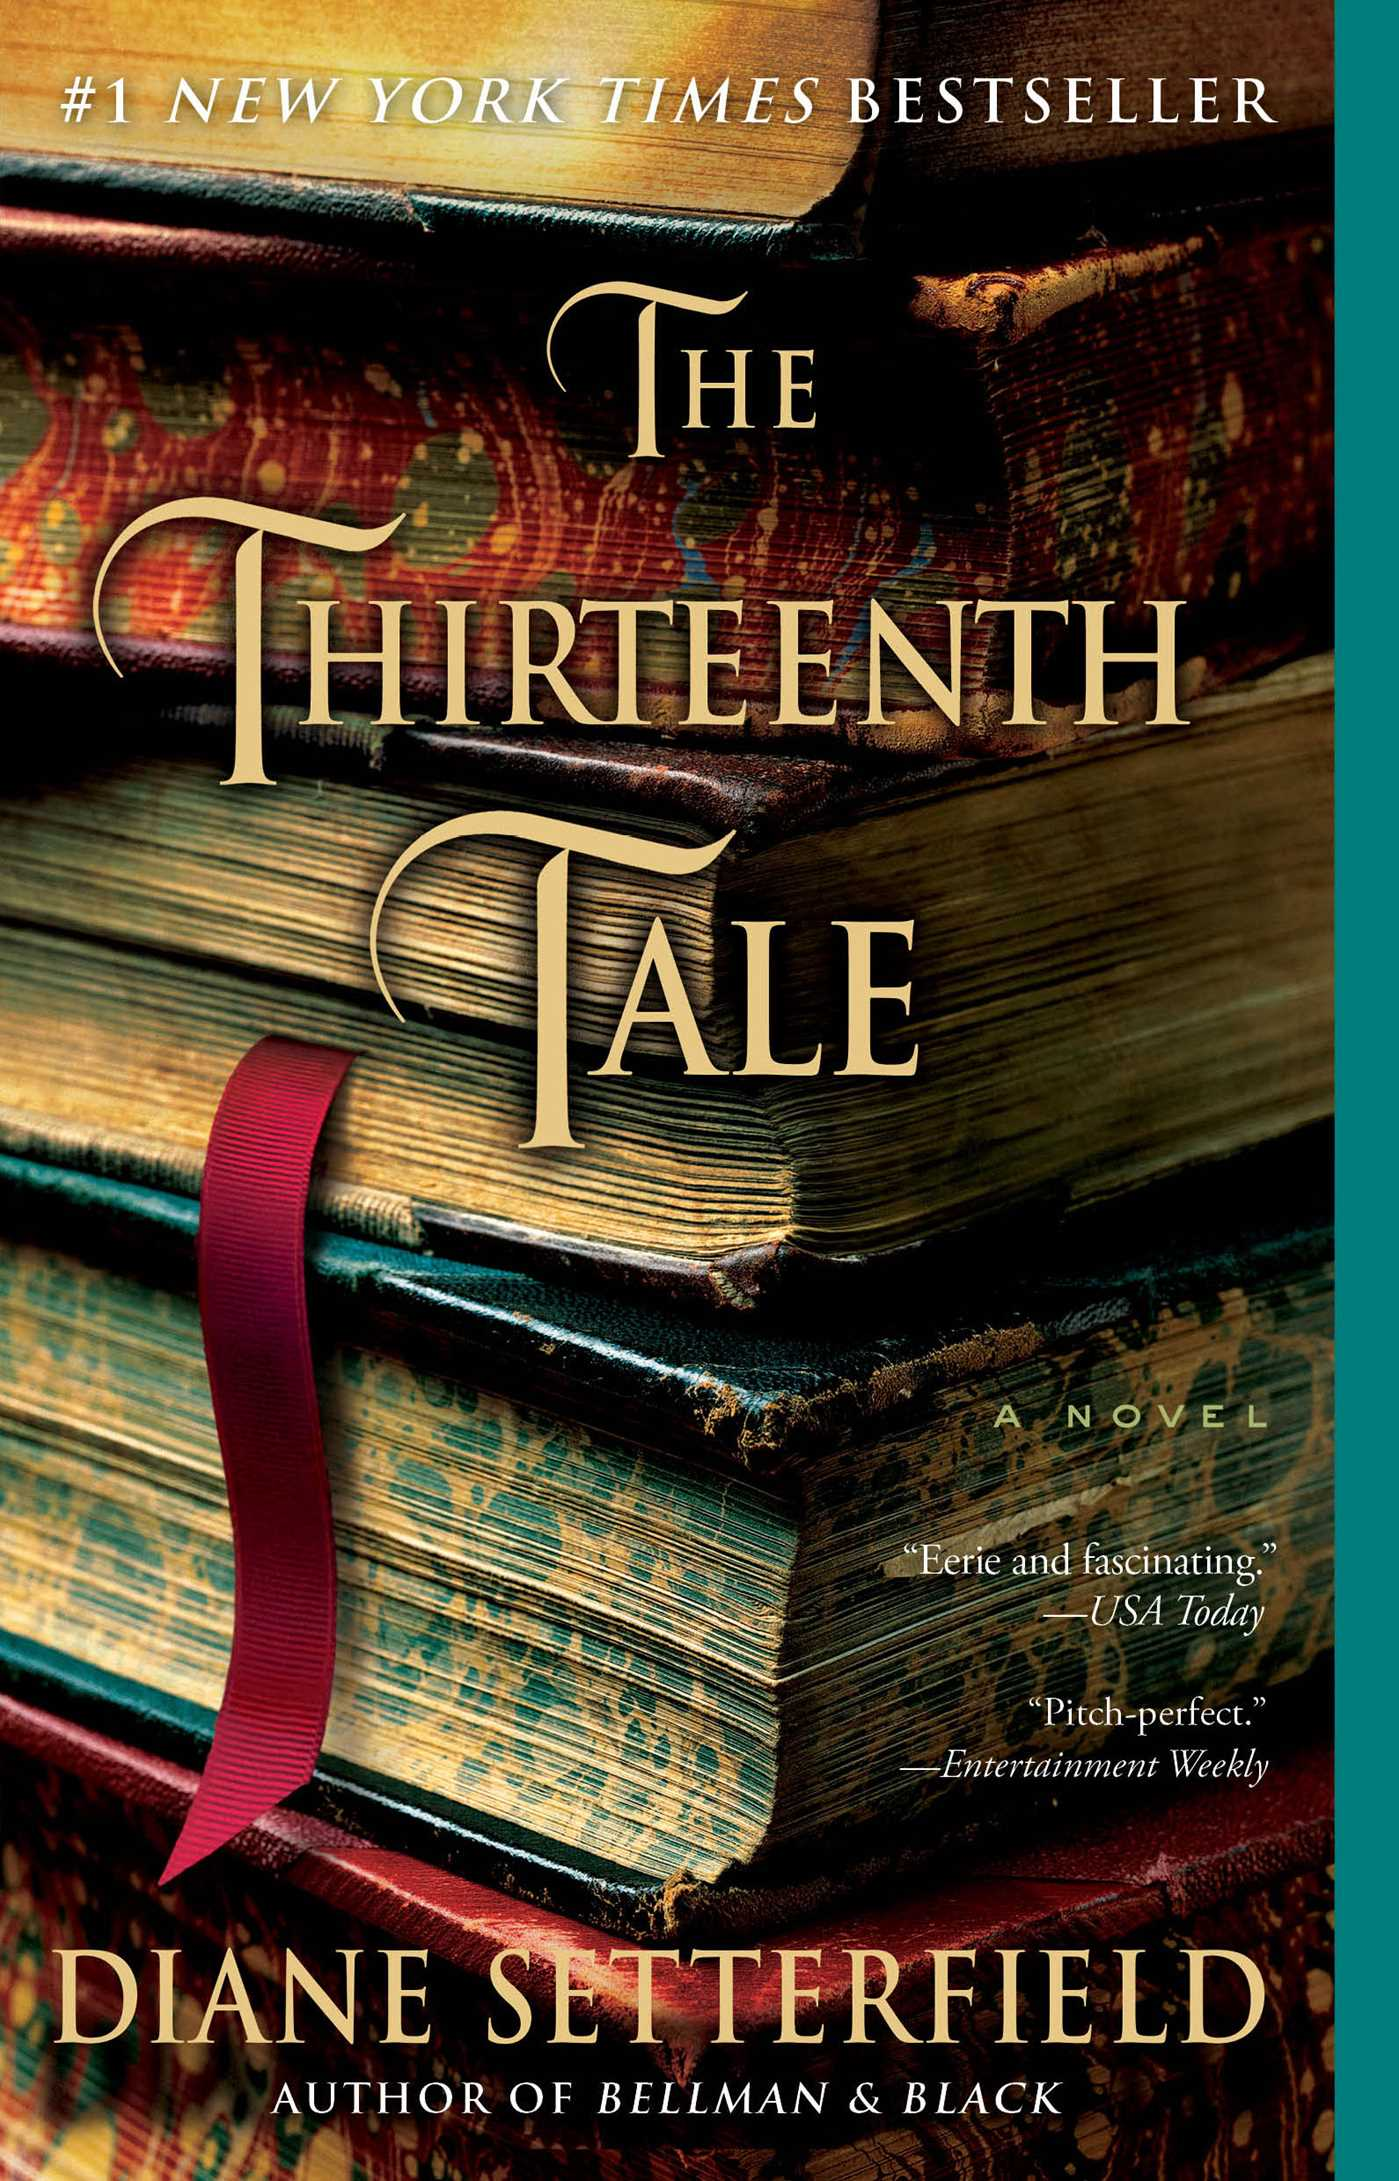 The-thirteenth-tale-9781416540533_hr